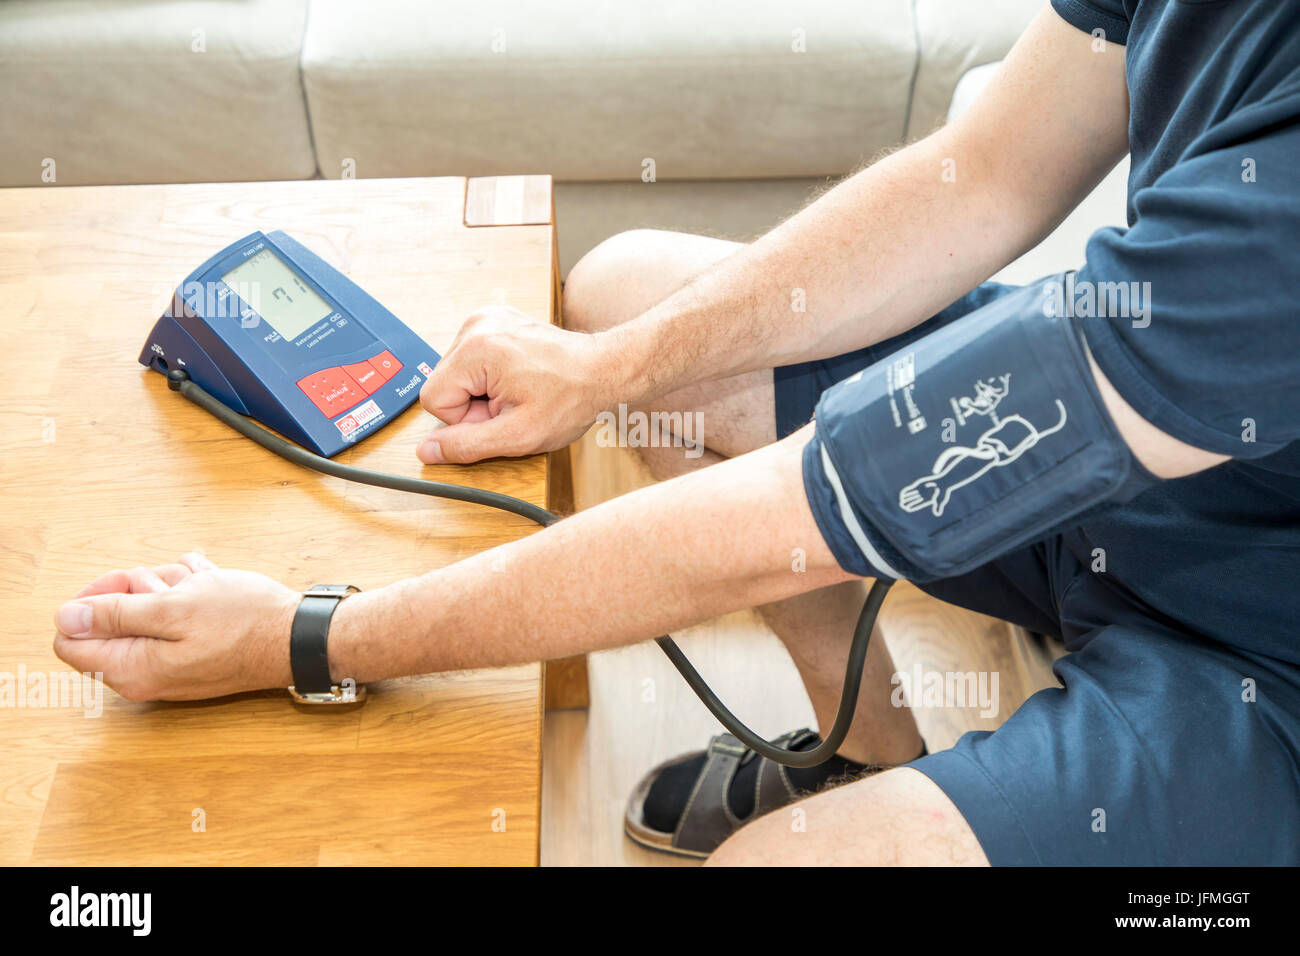 Blood pressure measurement, with an automatic upper arm blood pressure meter, - Stock Image